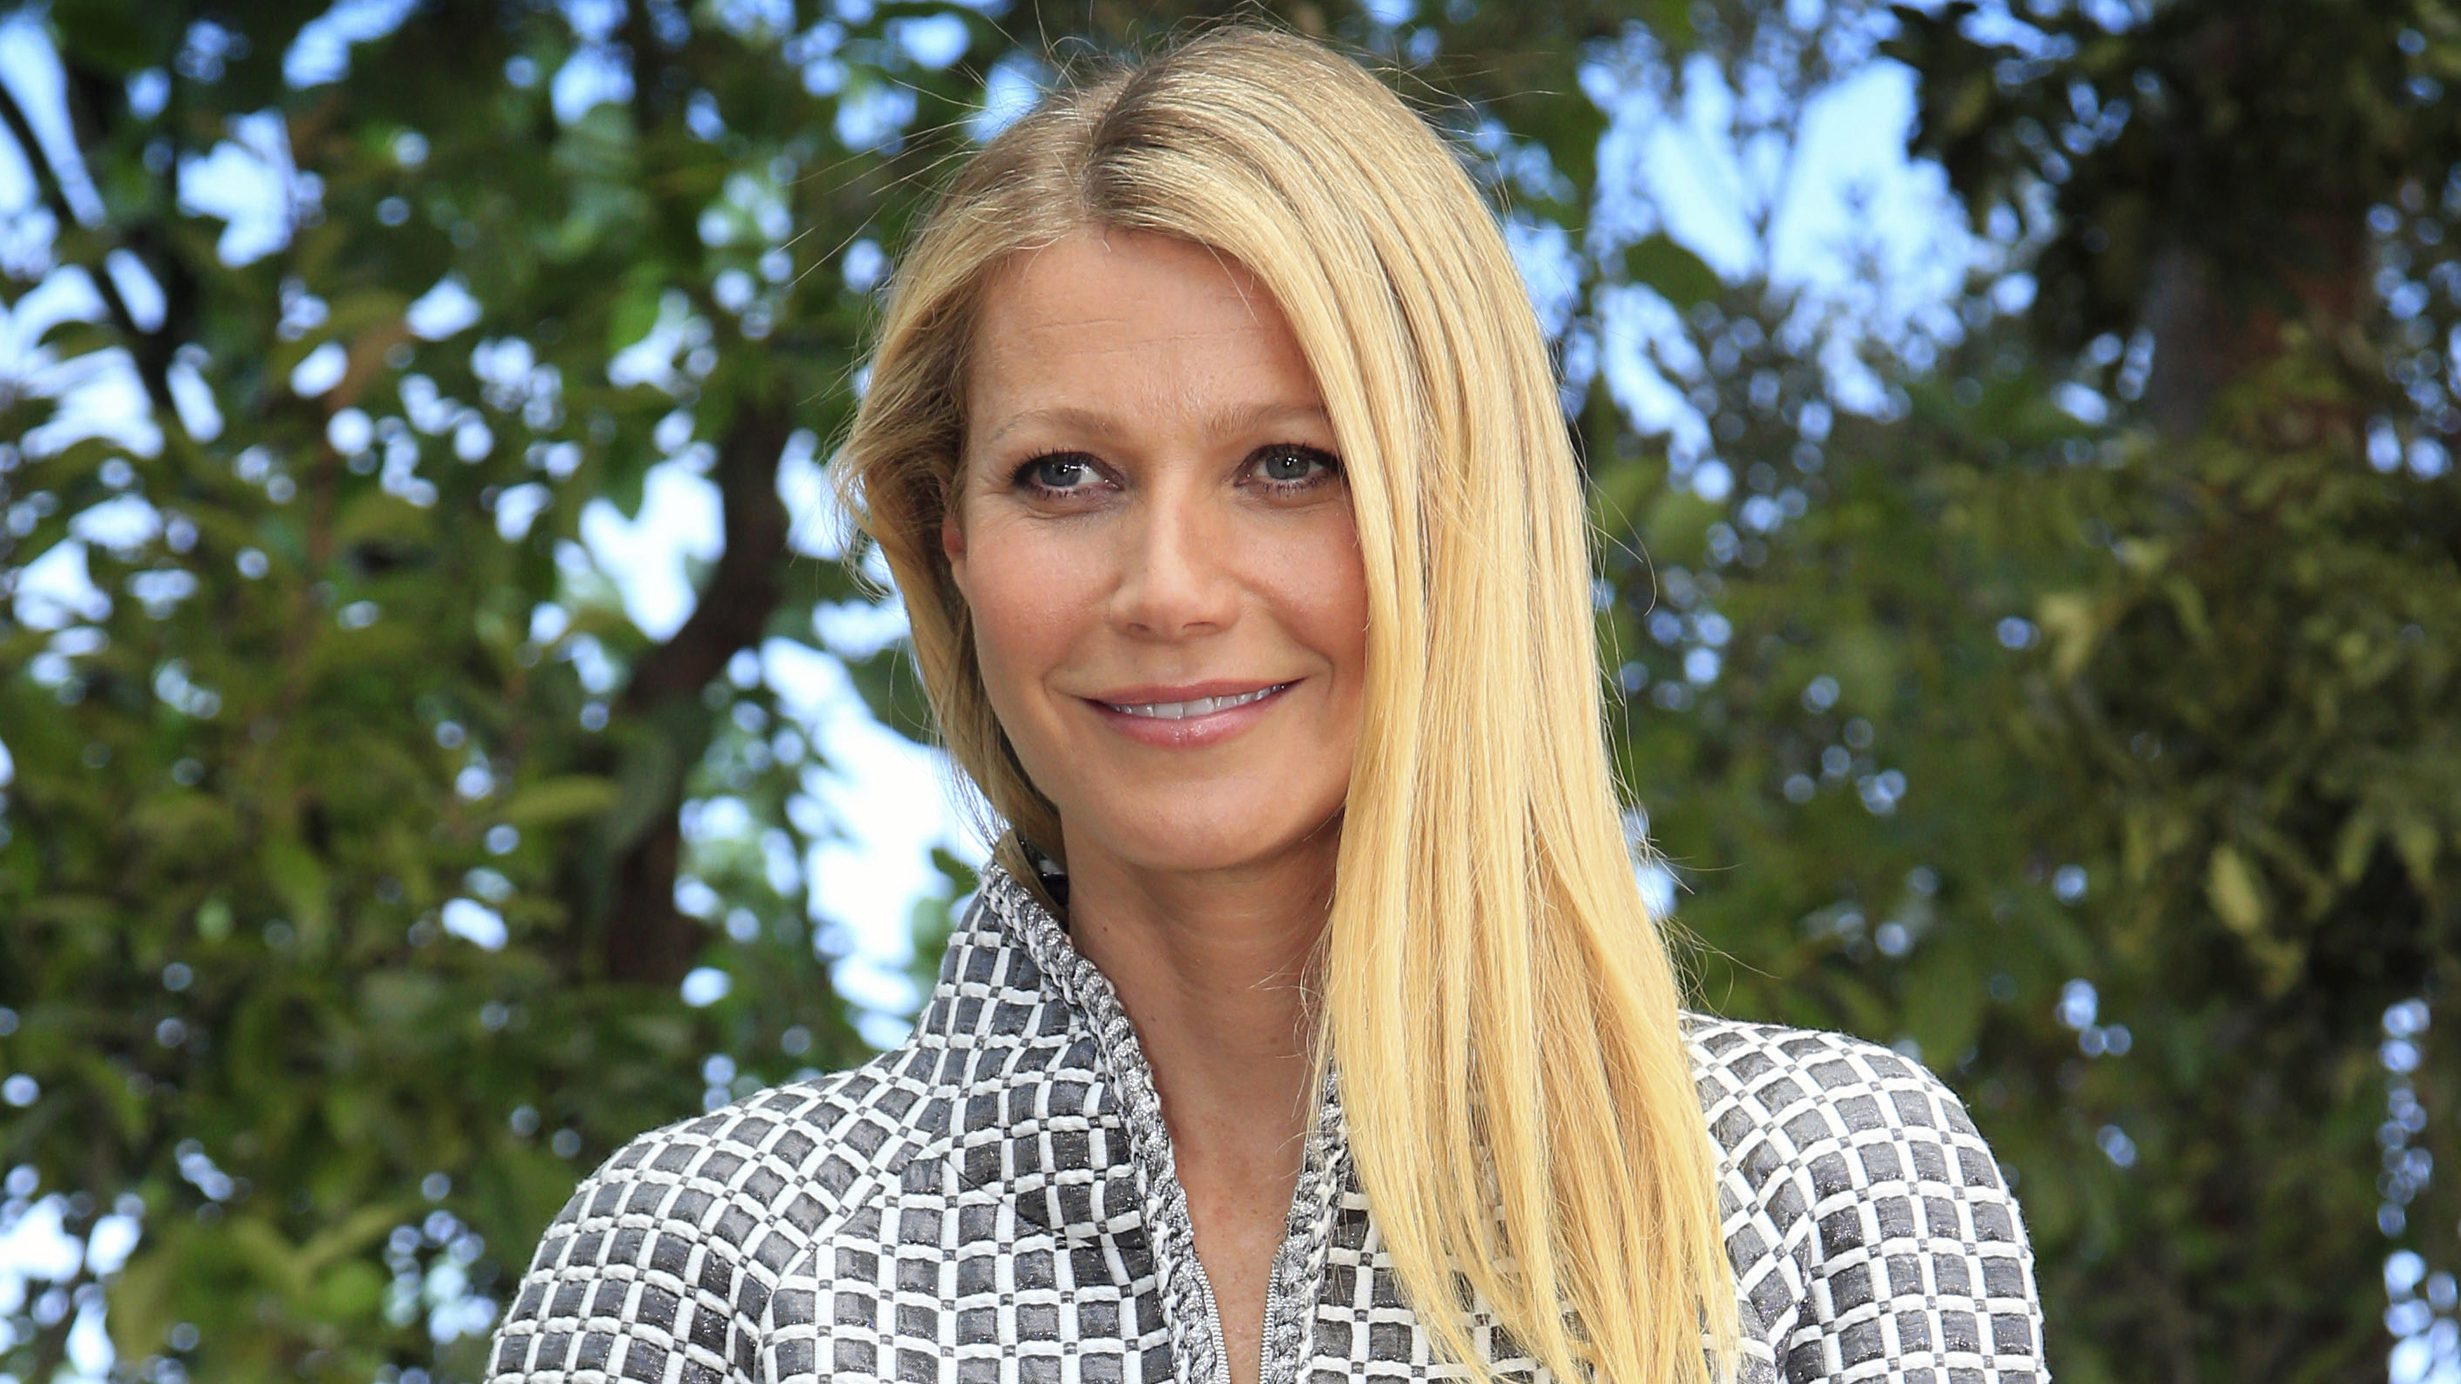 Gwyneth Paltrow's Latest Beauty Obsession Involves Getting Stung byBees